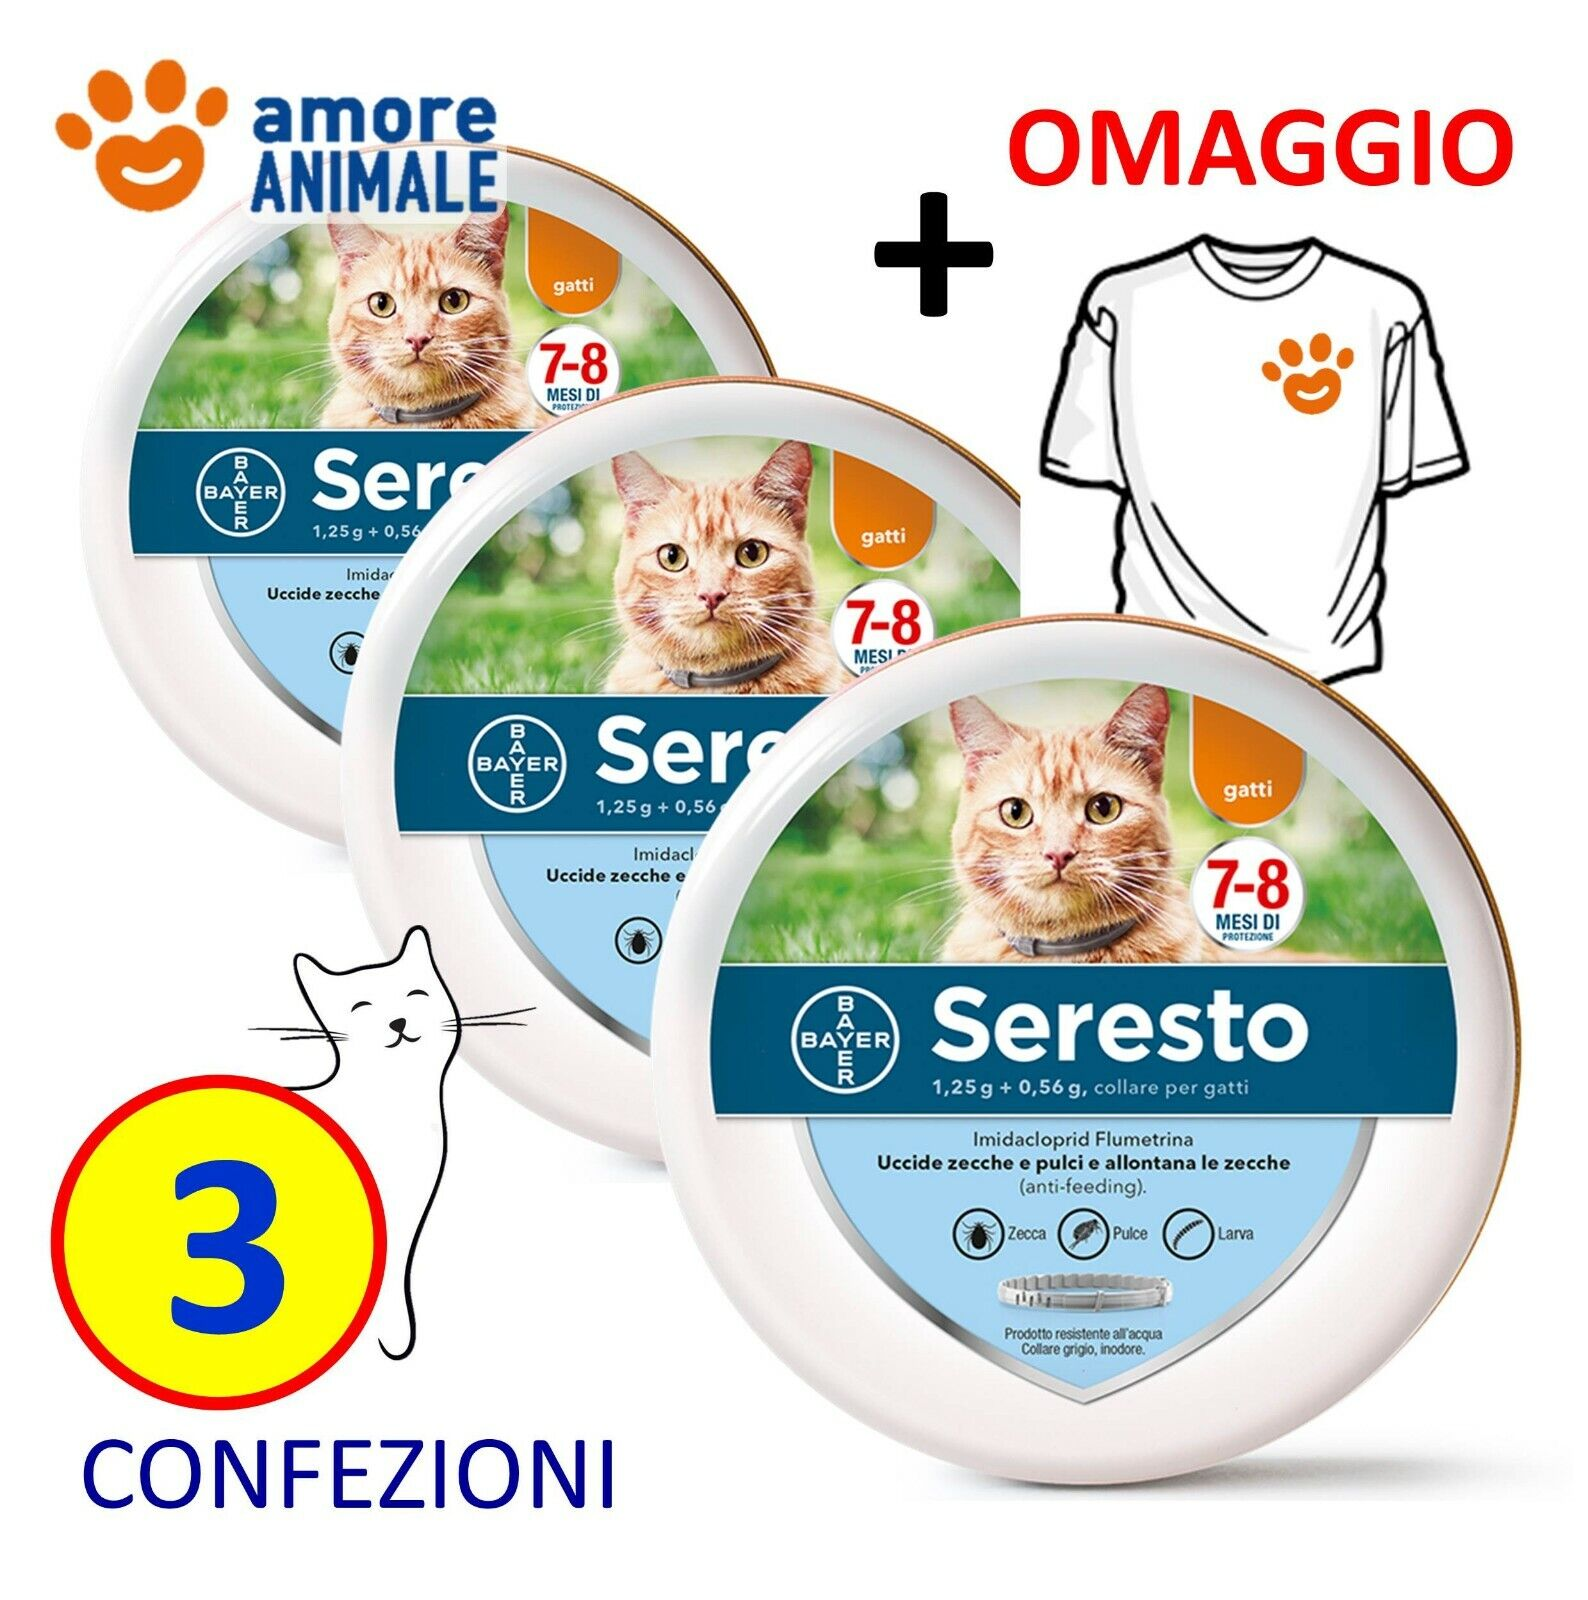 3 COLLARI (+M) - Seresto Bayer - Collare Antiparassitario per gatto gatti